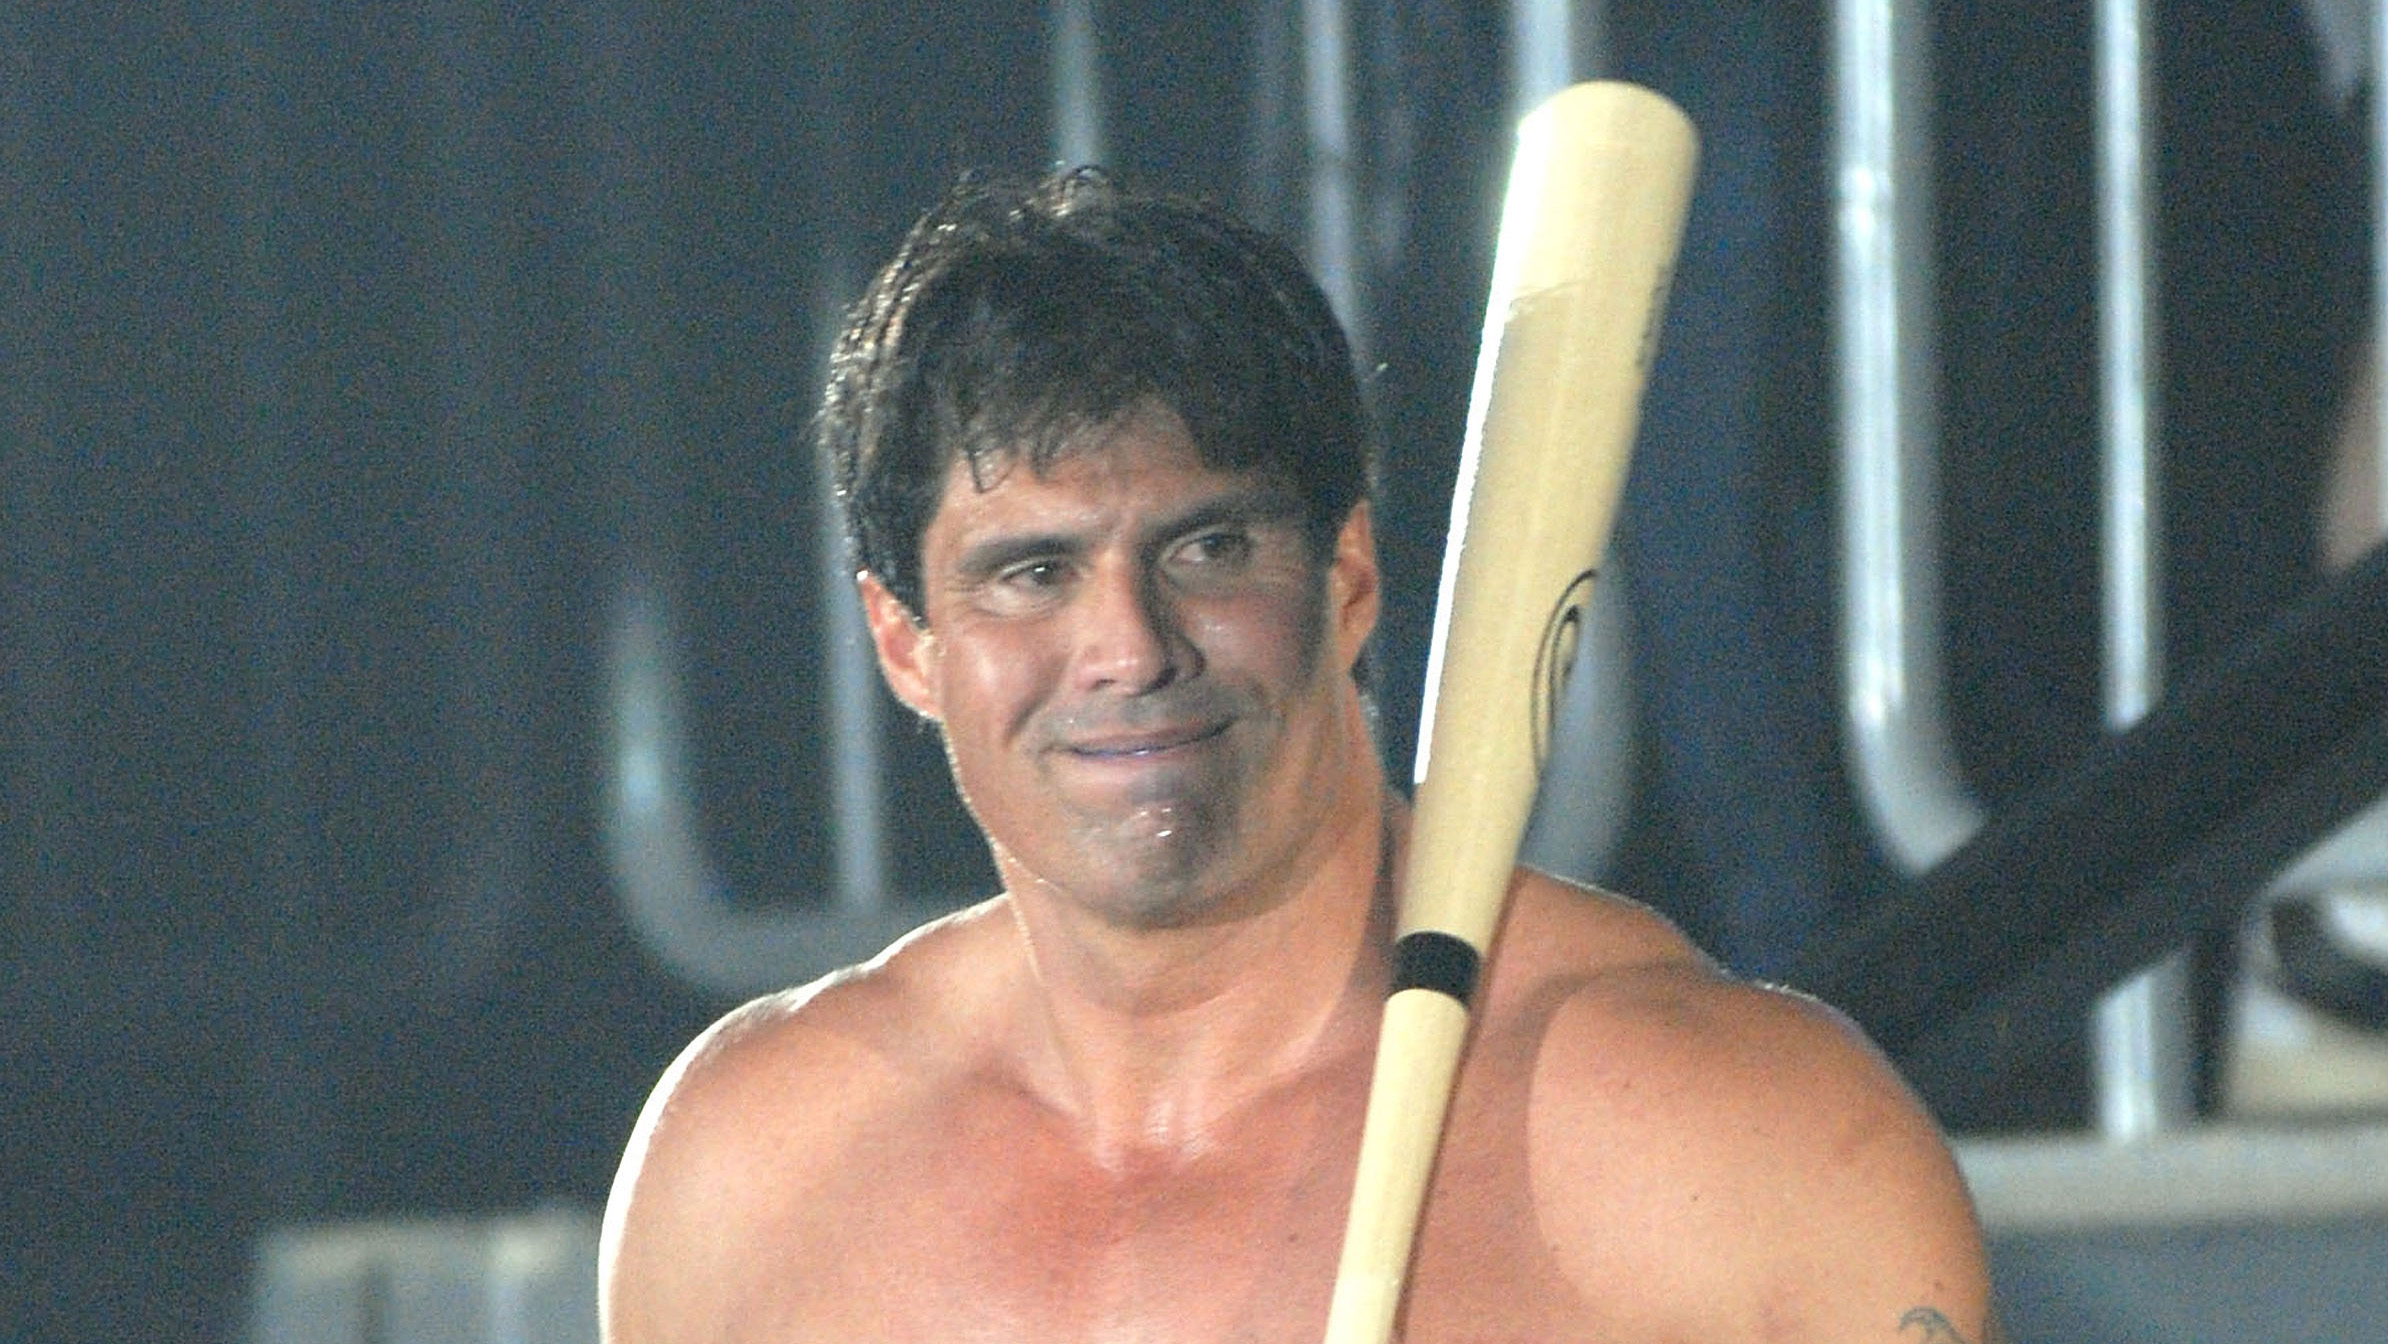 Jose Canseco: World Class Pro Wrestling signs MLB star